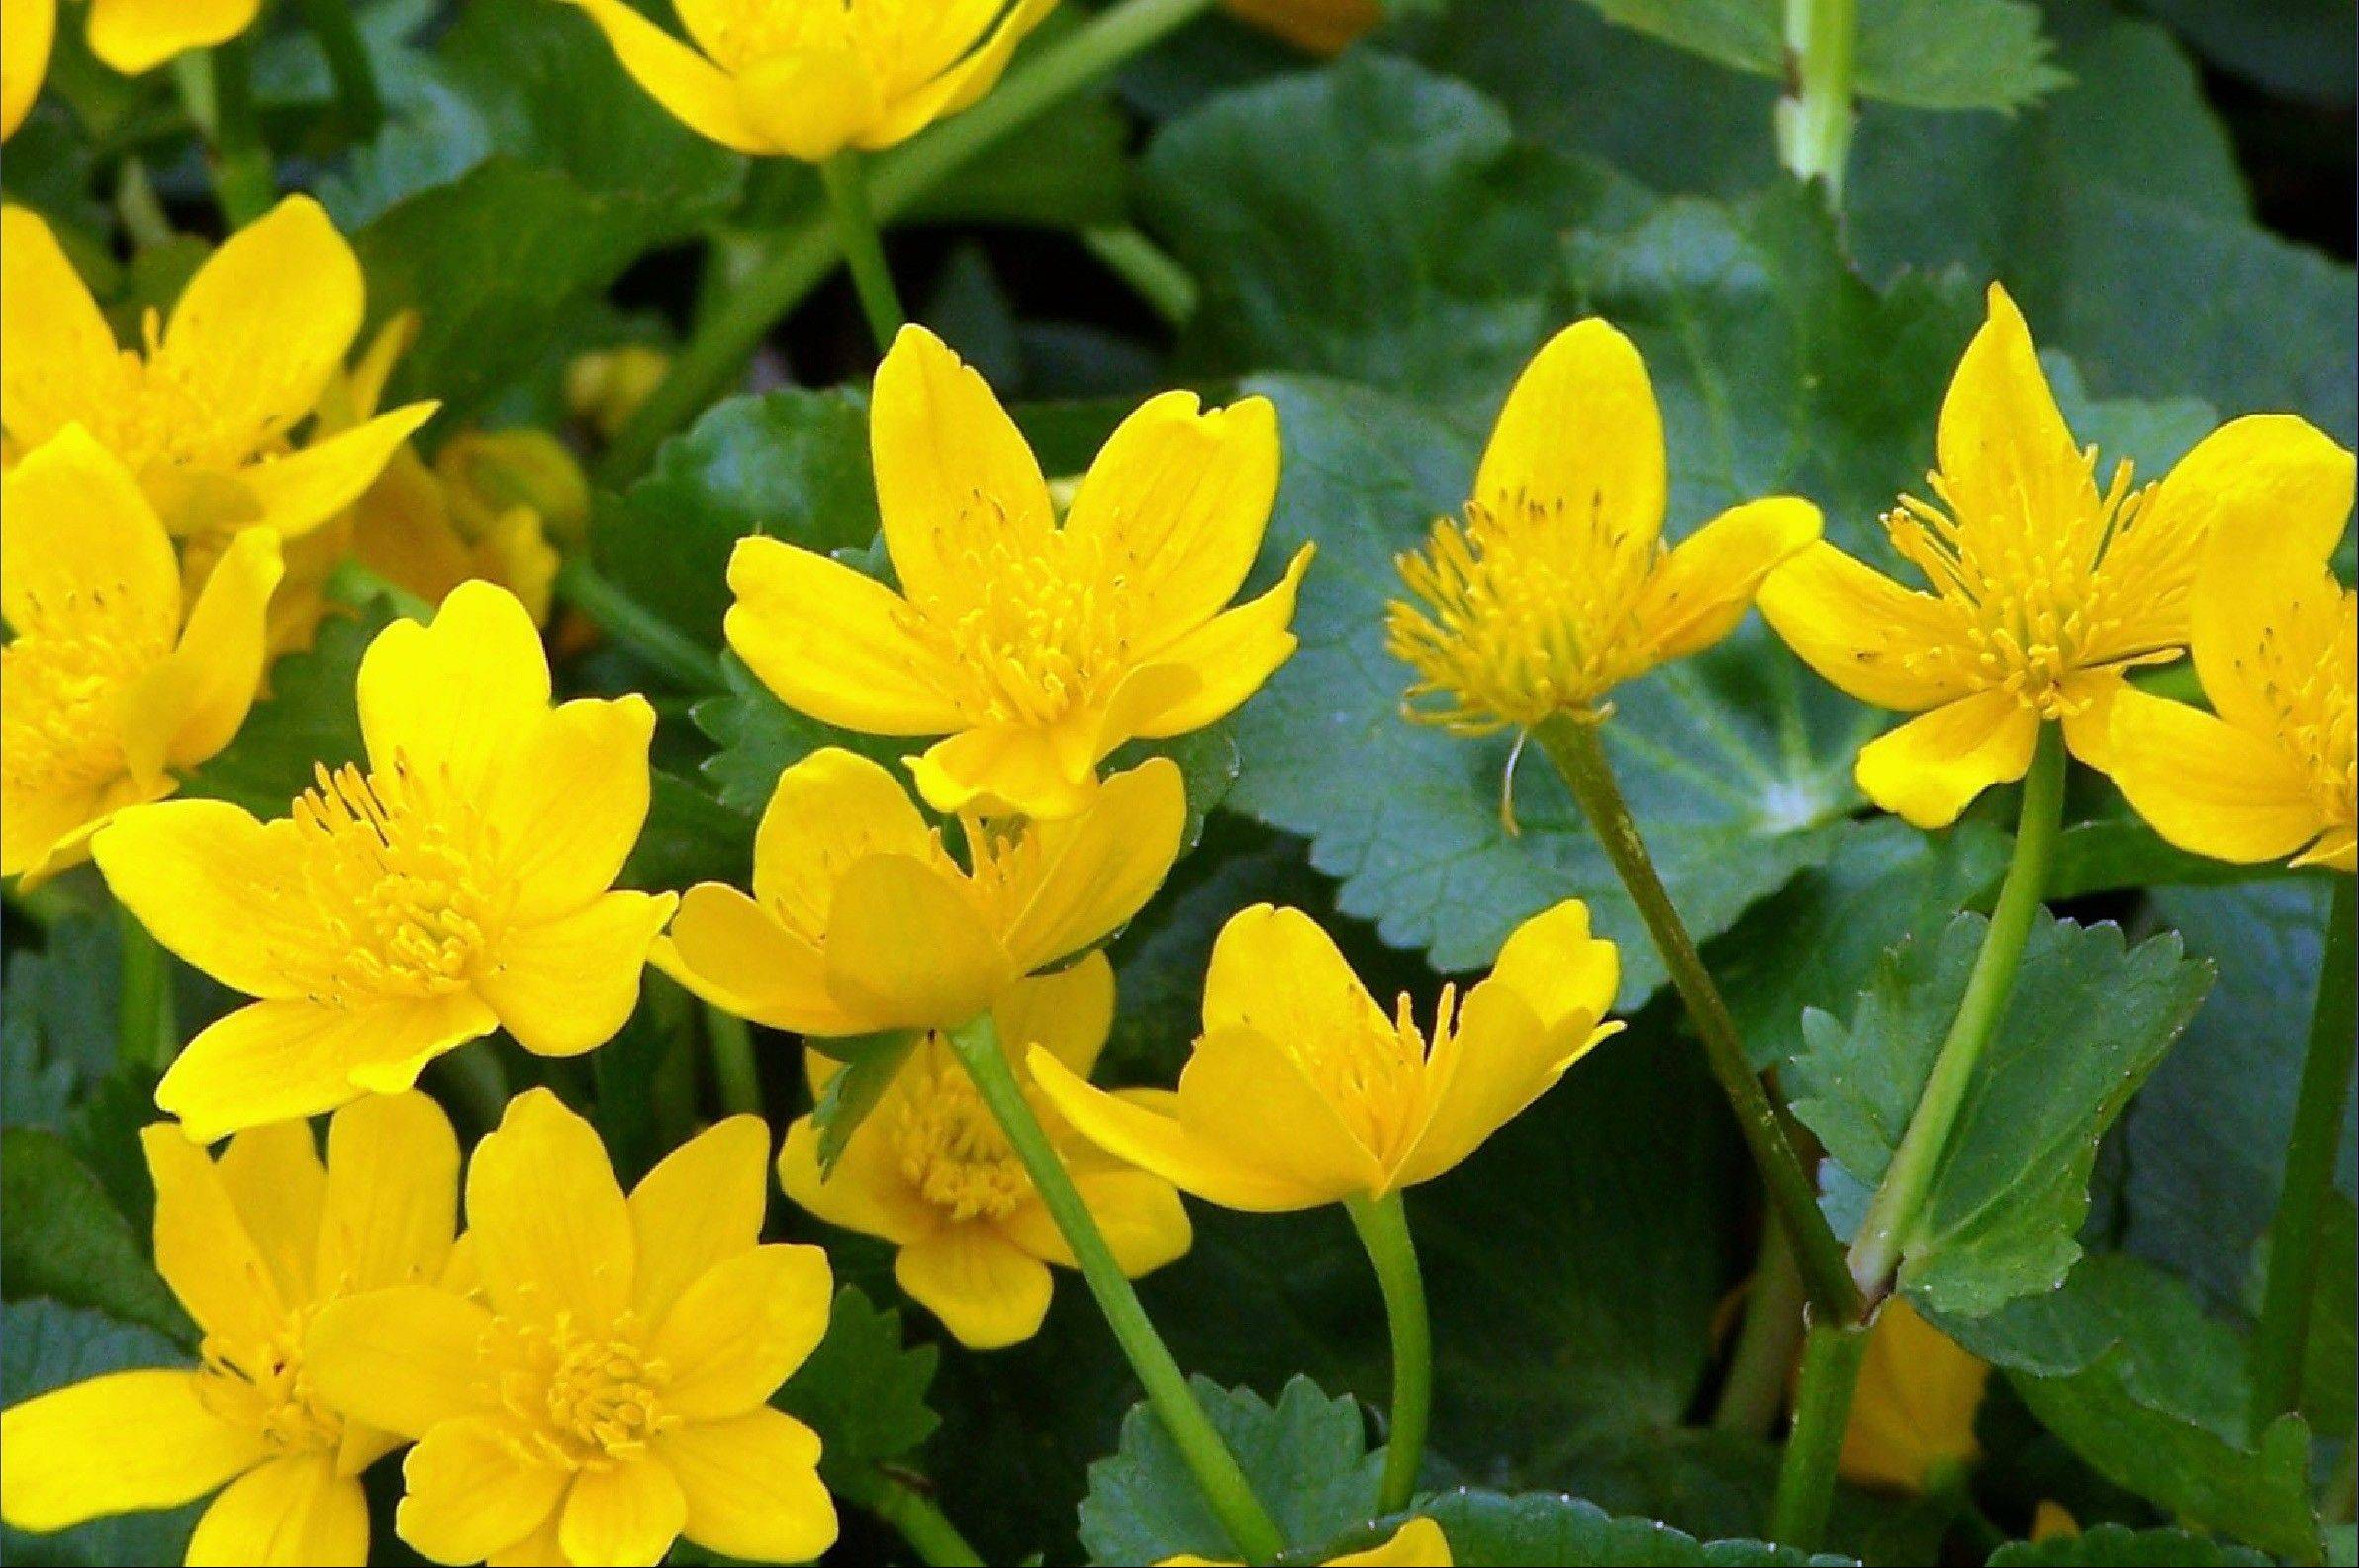 The bright yellow flowers of marsh marigolds brighten a moist area.